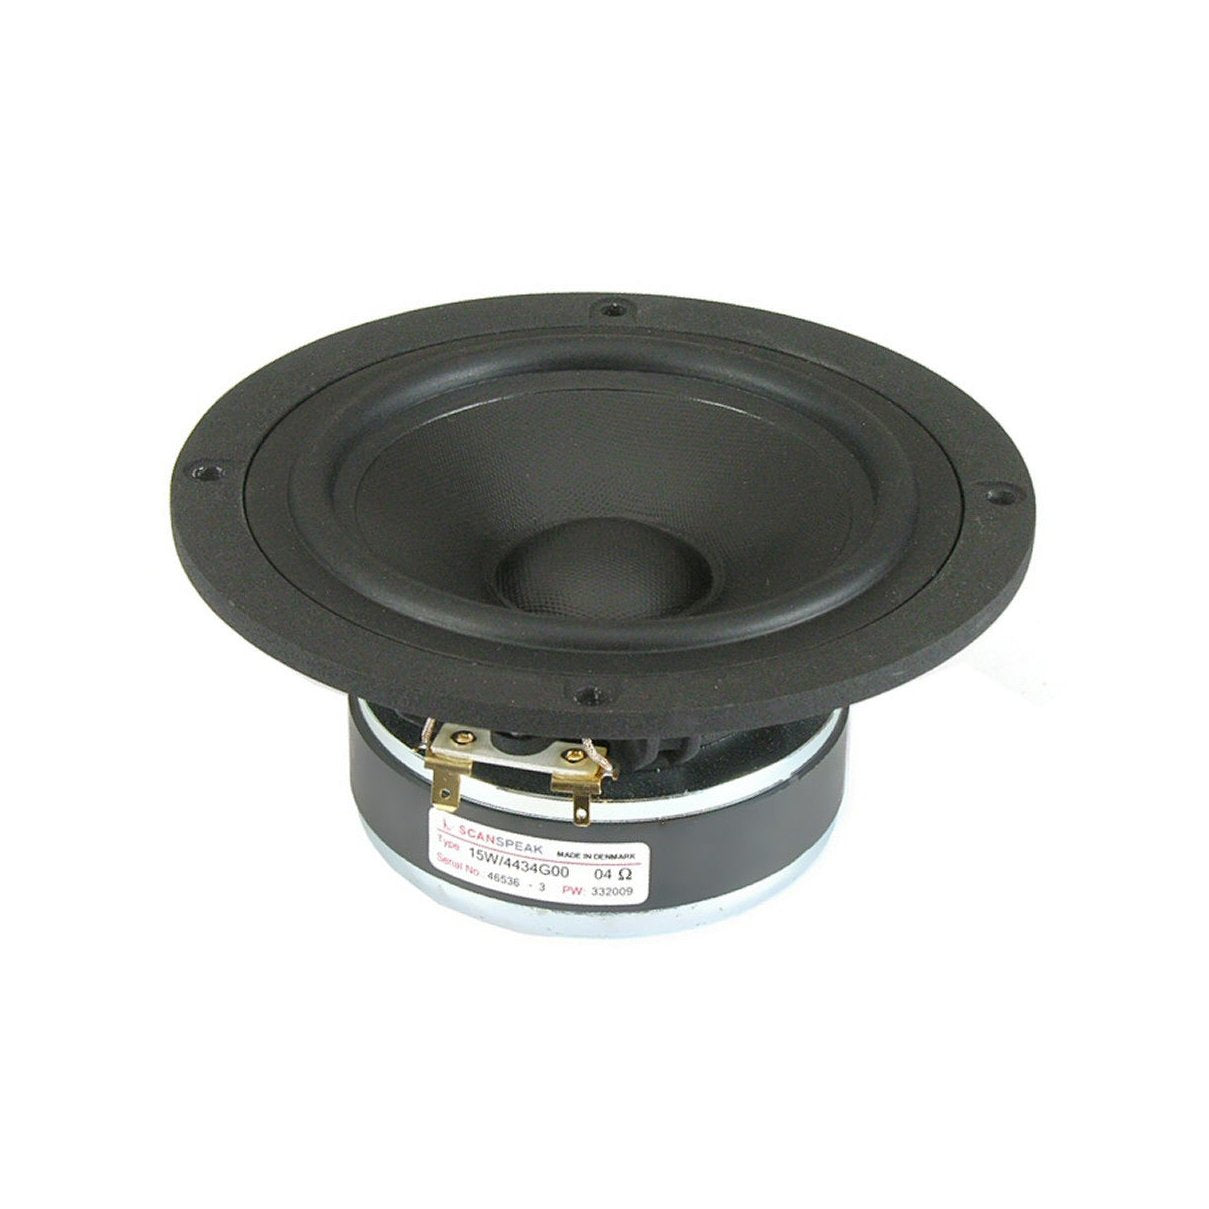 Scanspeak Discovery 15W/4434G00 Midwoofer - Willys-Hifi Ltd